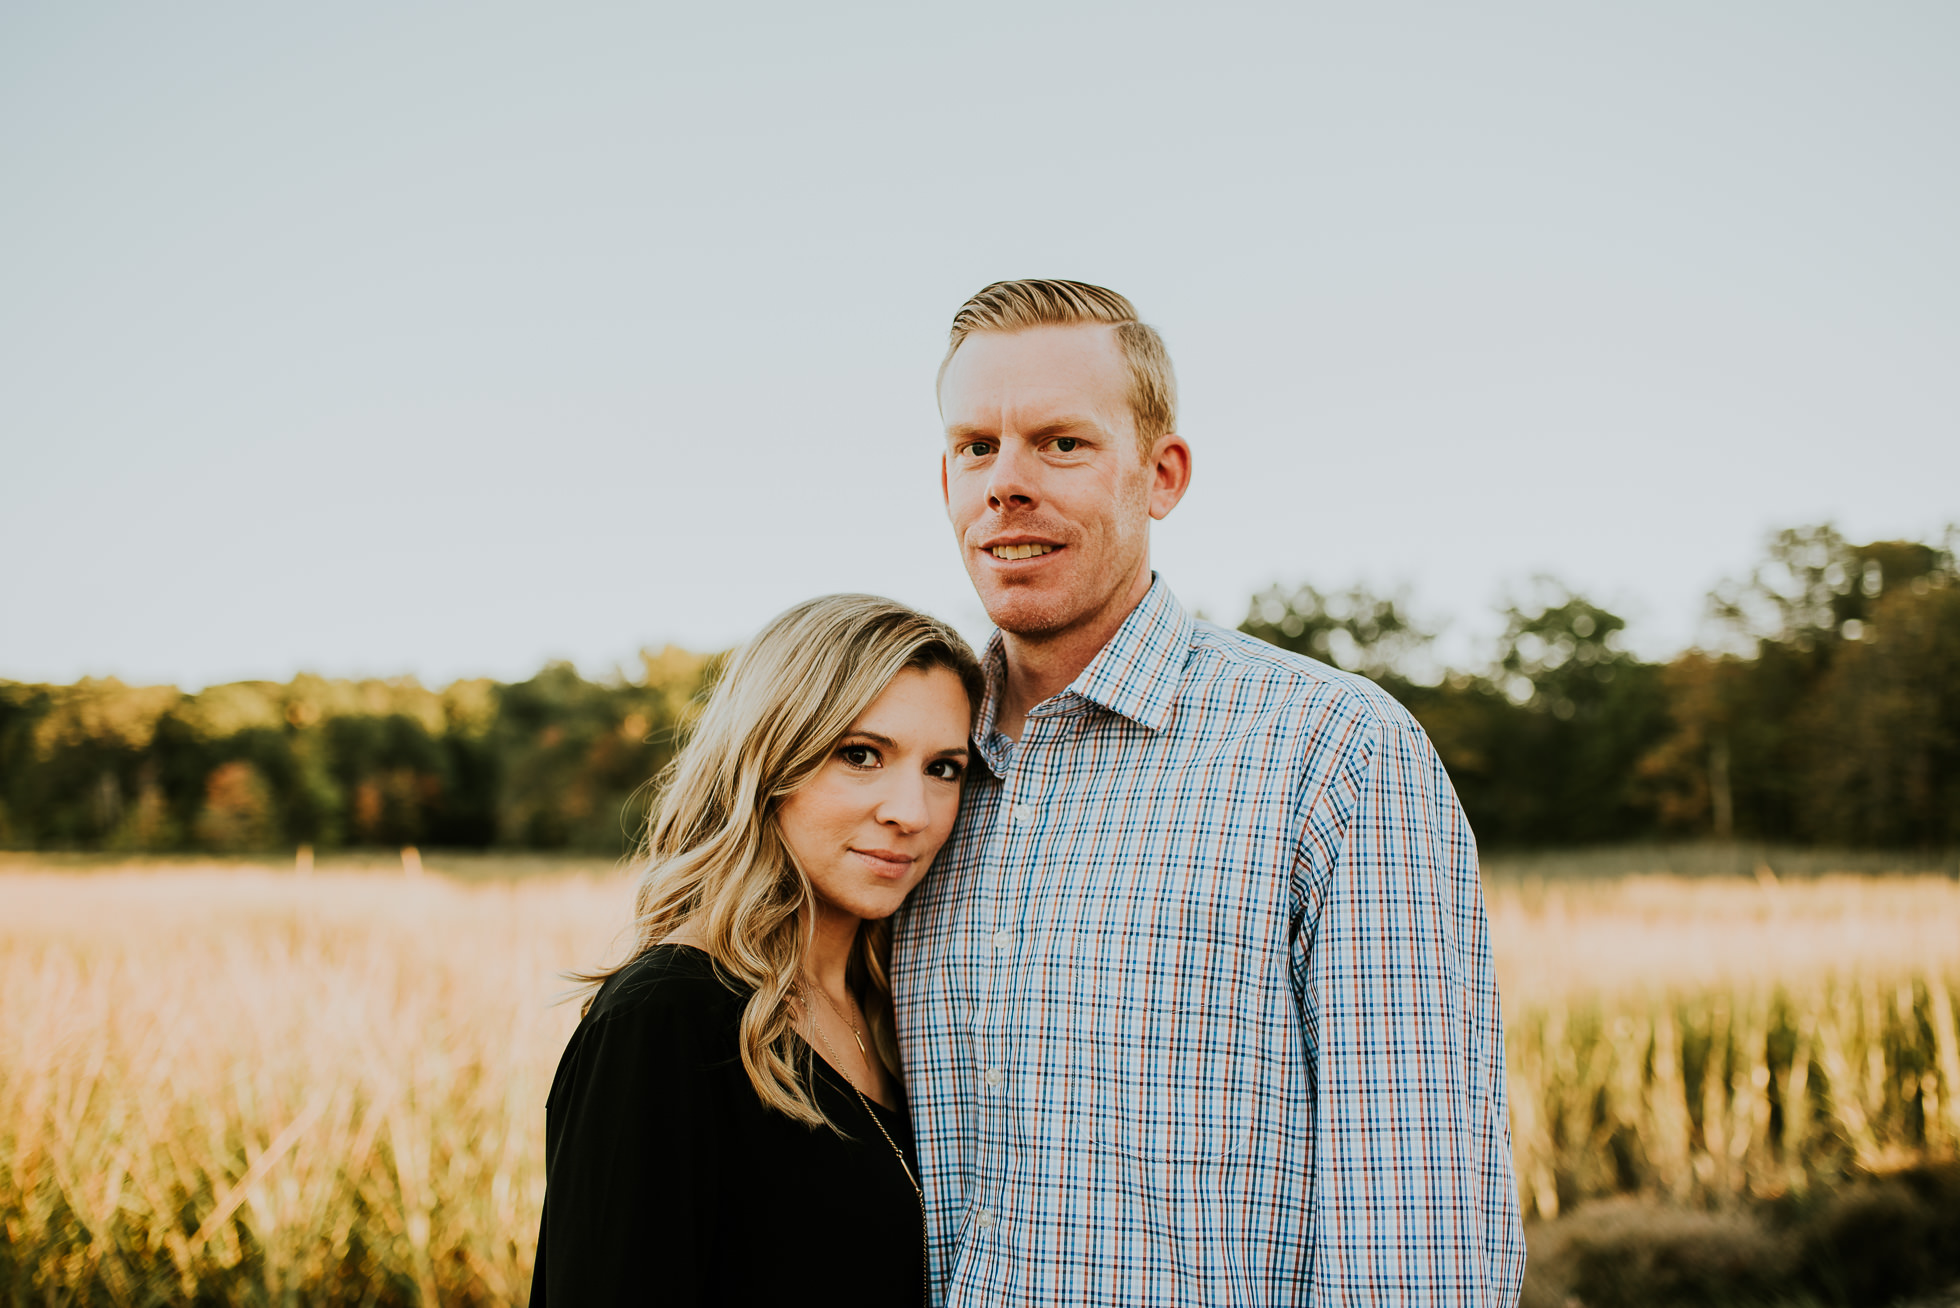 couple portraits session photographed by Traverse the Tides